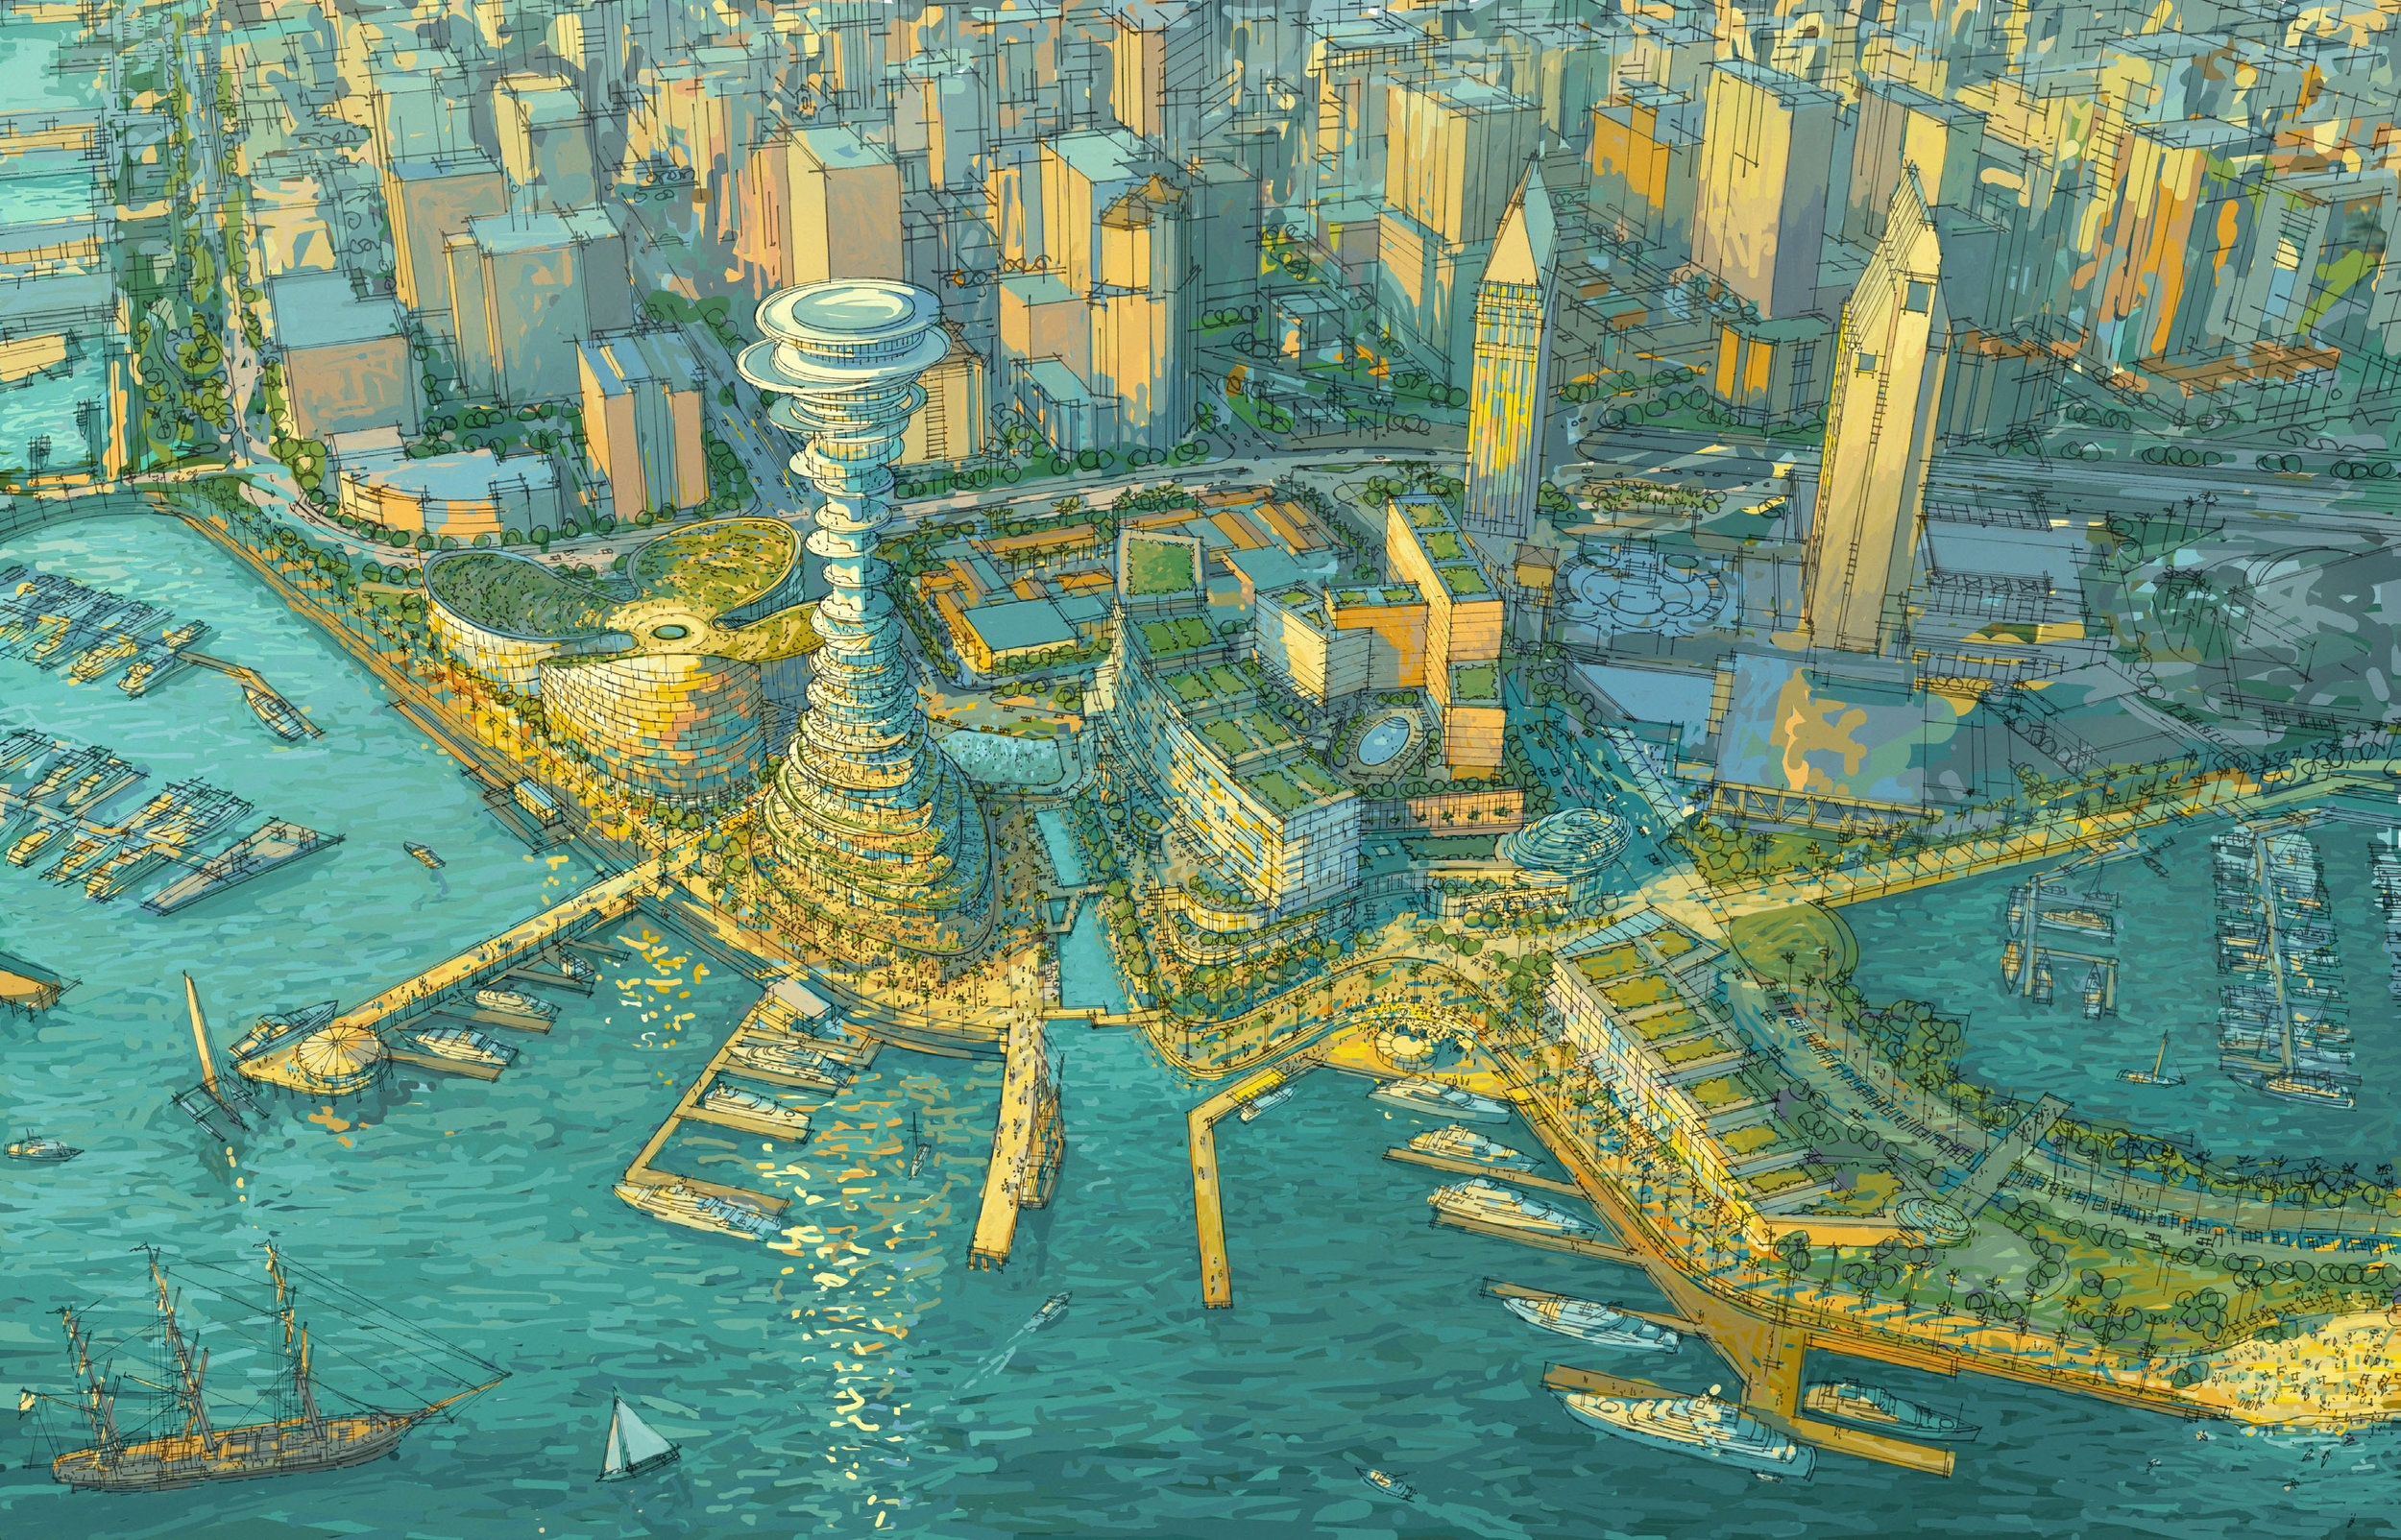 SEAPORT SAN DIEGO Project Value: $2.4B